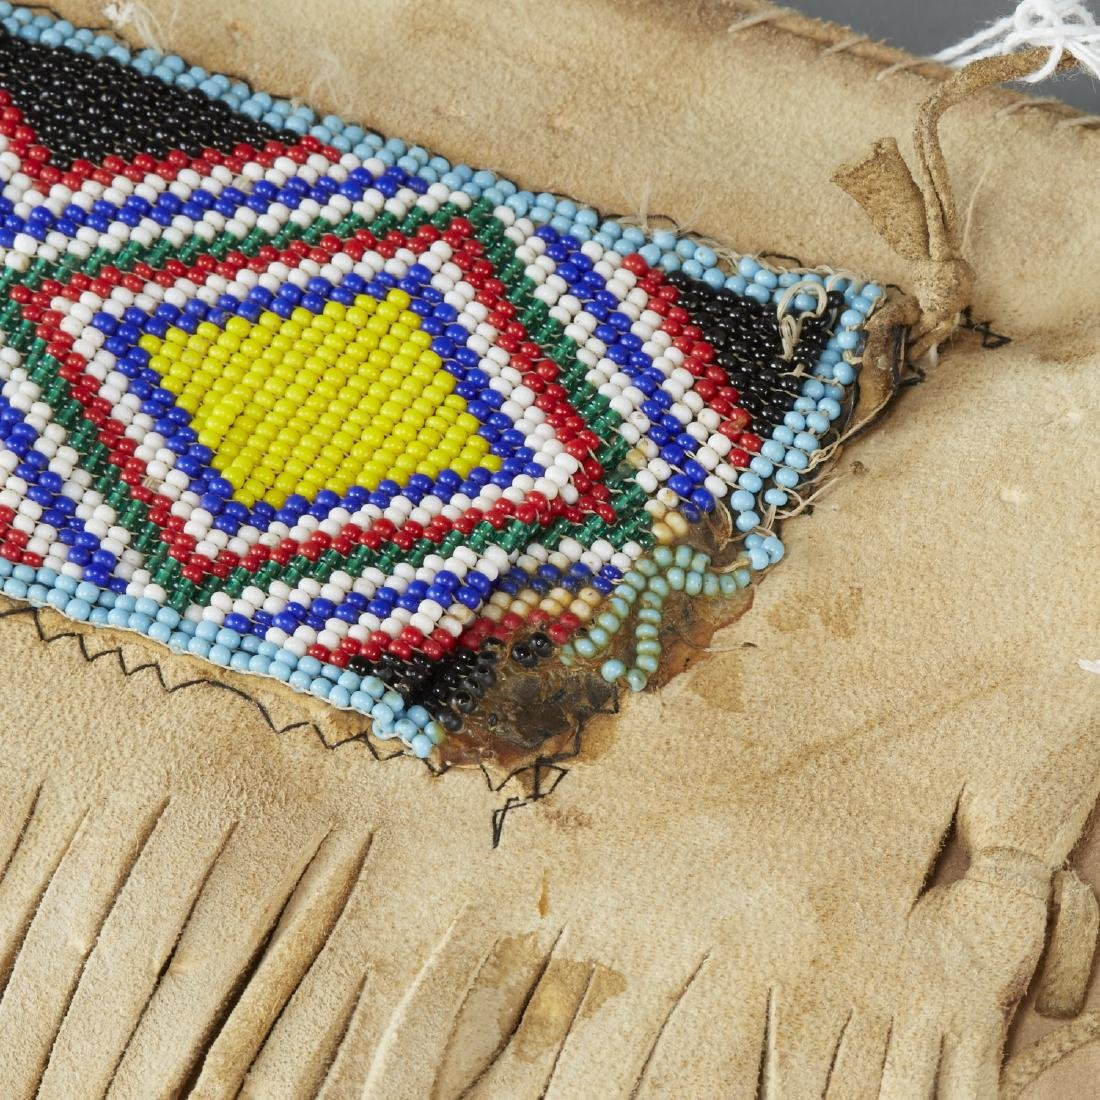 Native American Beaded Leather Pants - 4